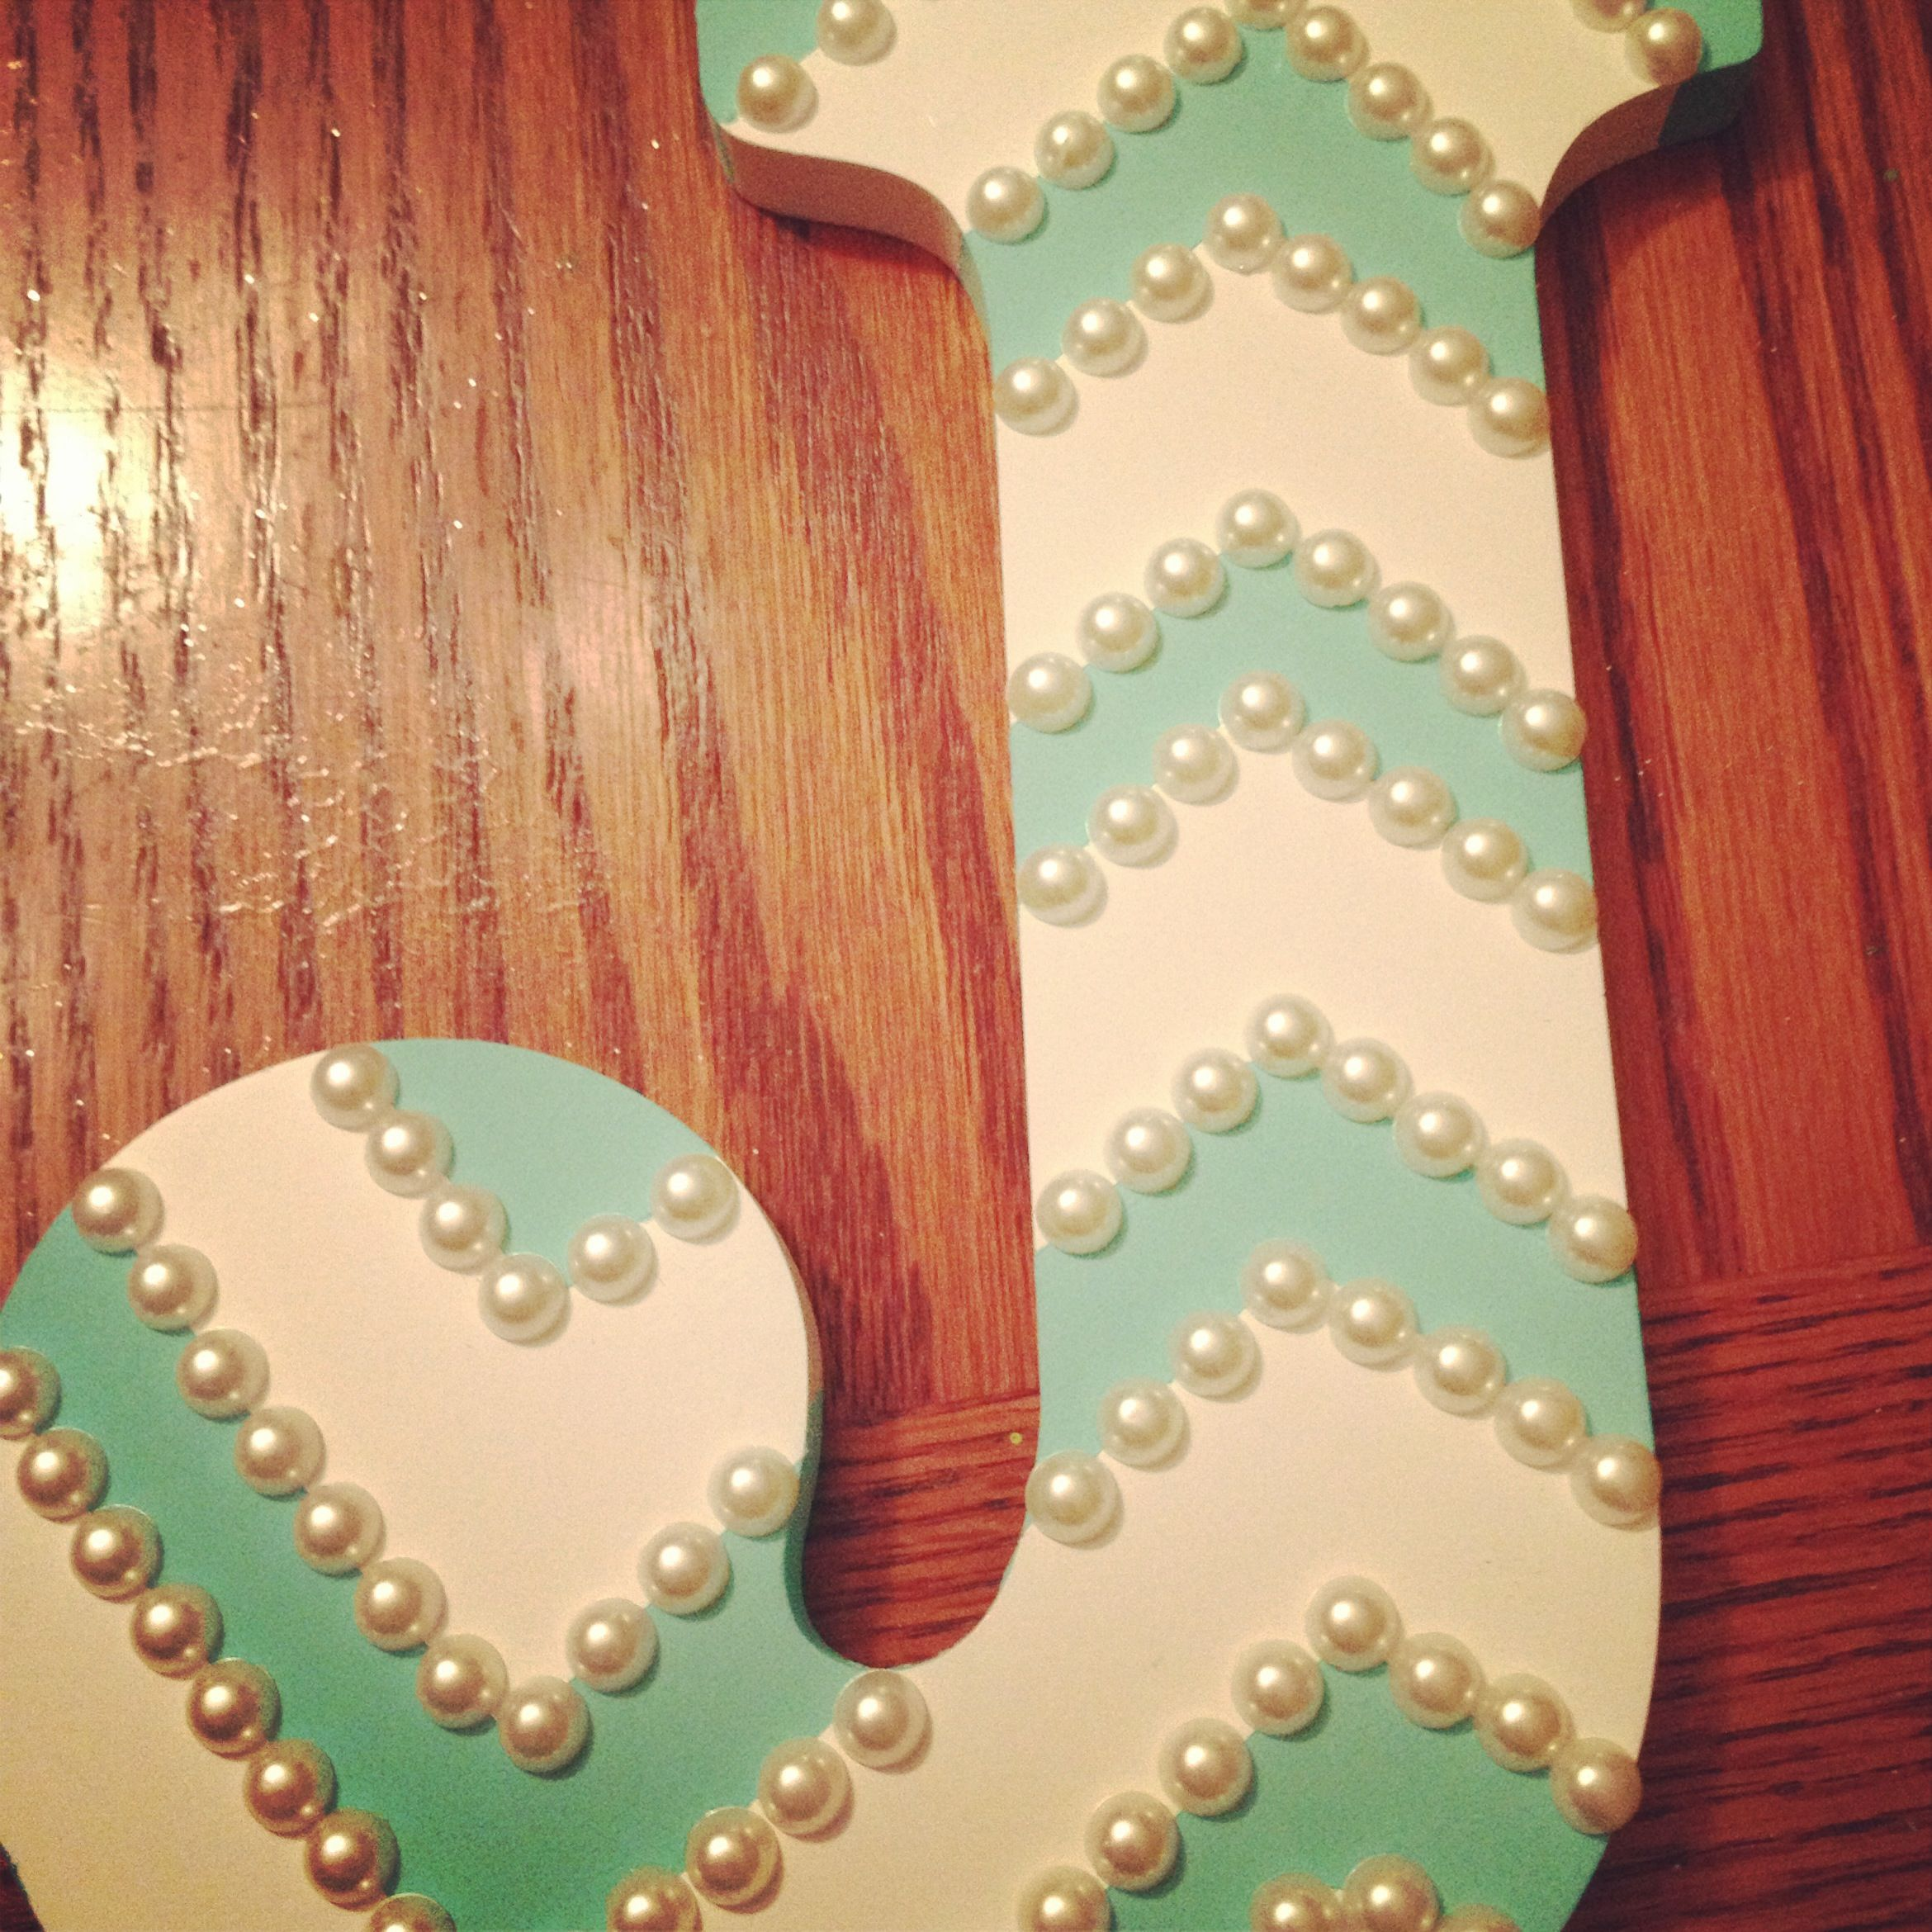 Painted wooden shapes for crafts - Wooden Letter Painters Tape Aqua Paint And Pearls